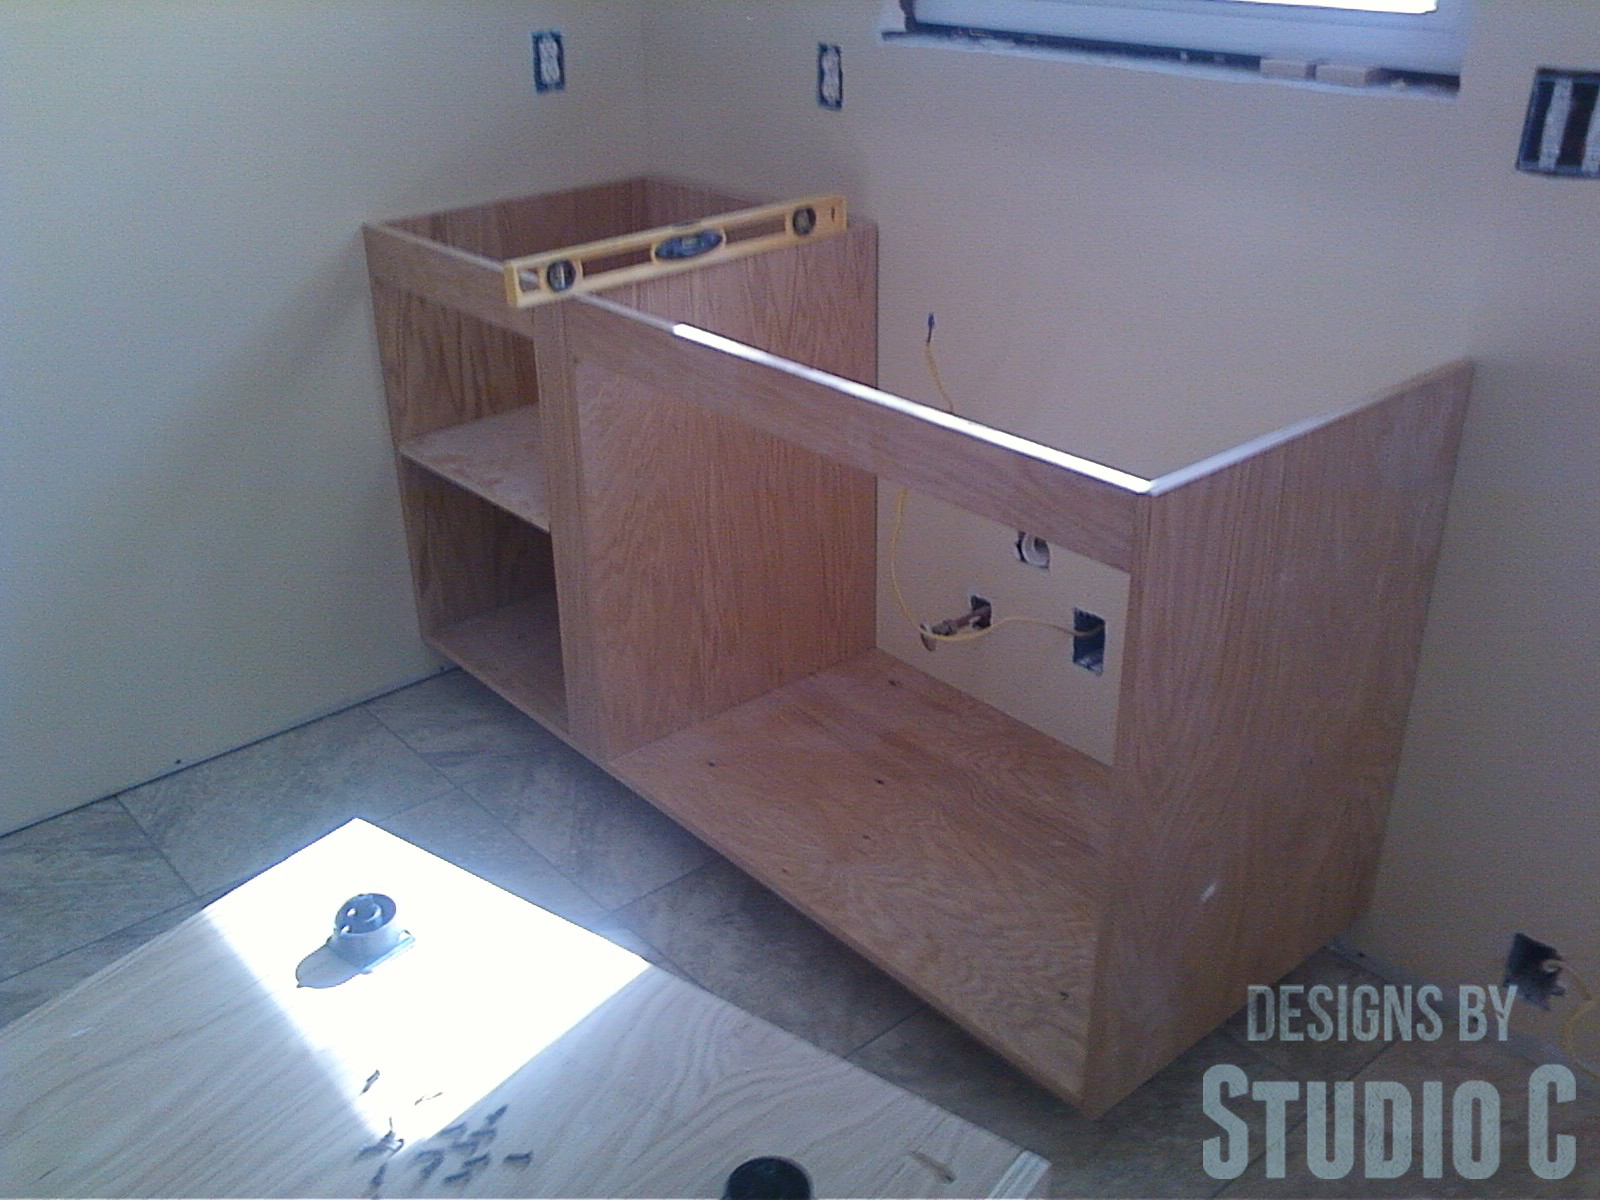 good How To Build Kitchen Cabinets In Place #2: Installing Cabinets In The Kitchen Designs By Studio C. How To Build ...